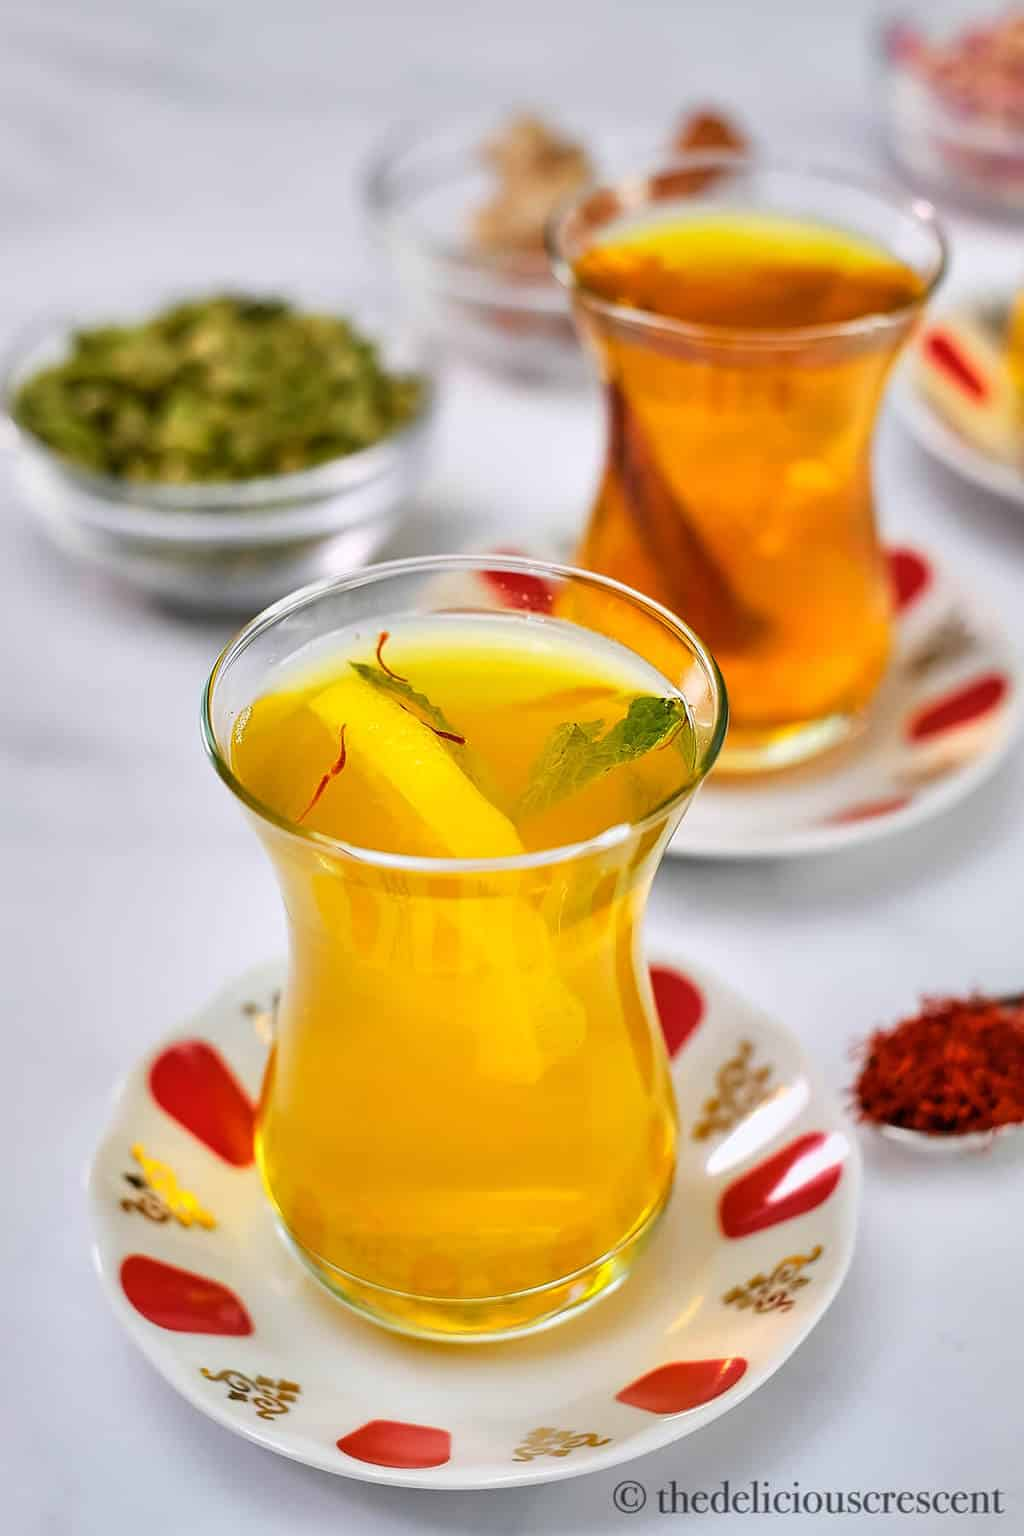 Hot beverage with ginger and mint served in a glass.